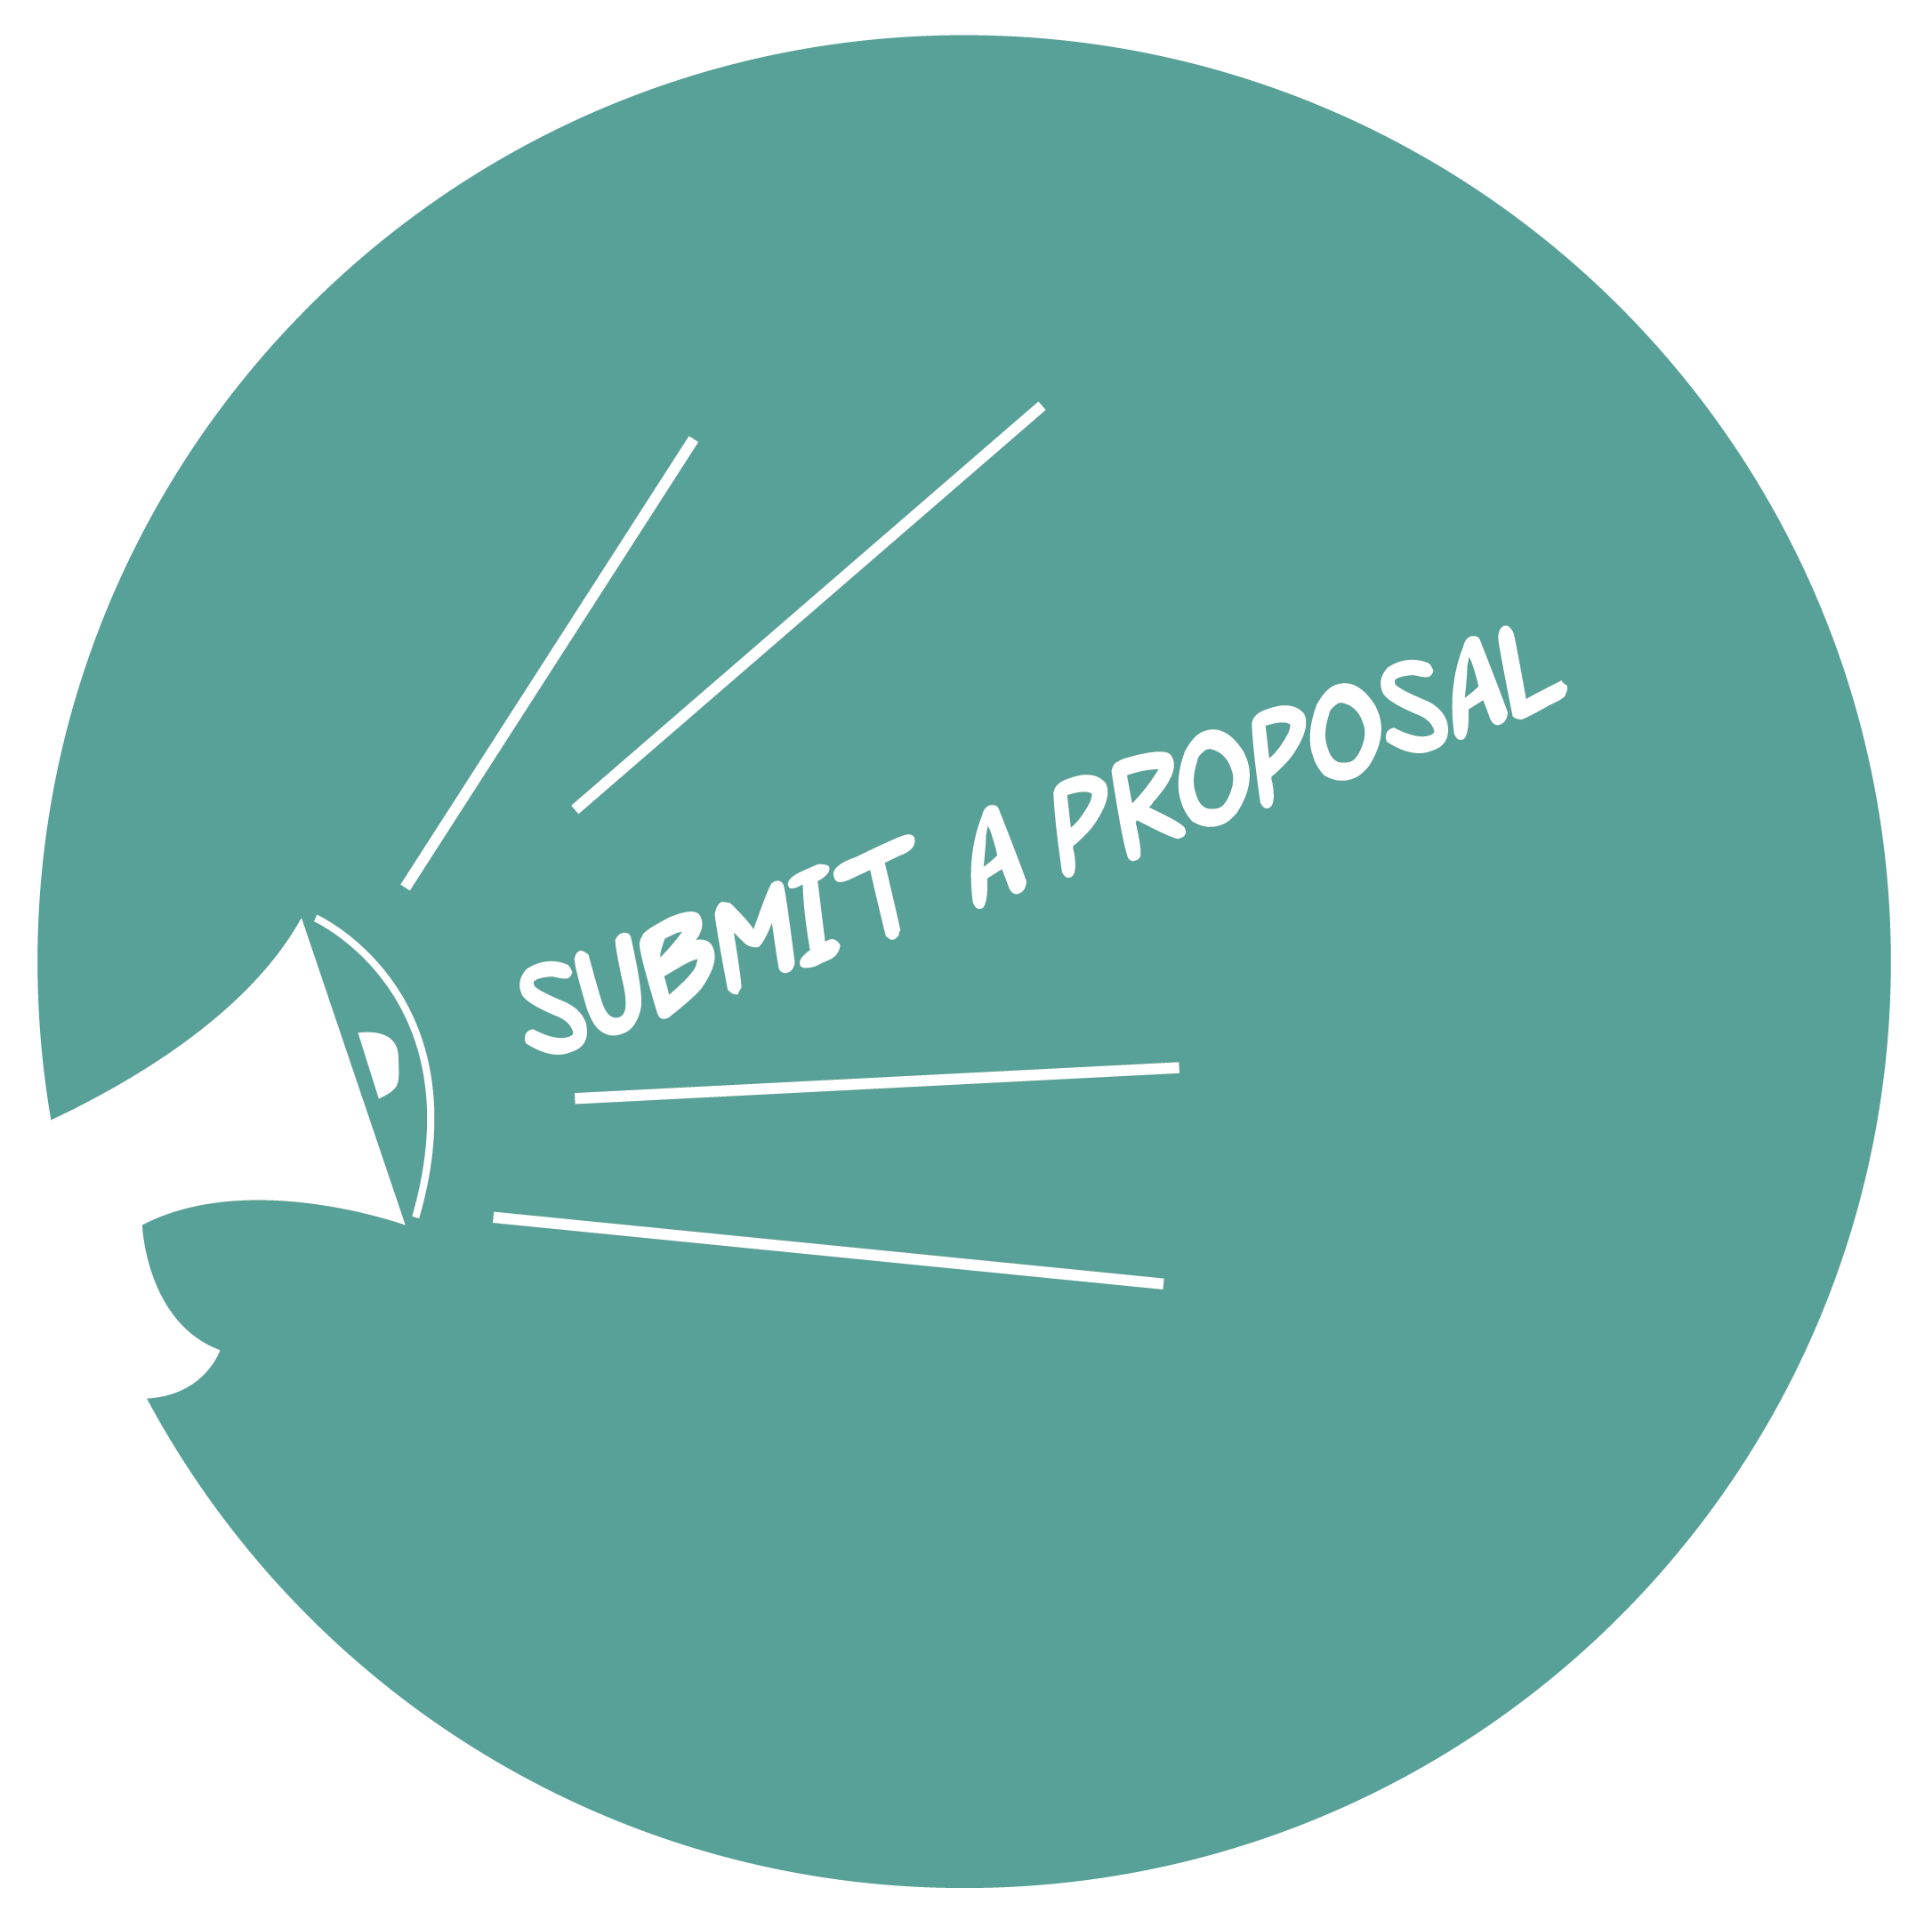 proposal_button-01.png